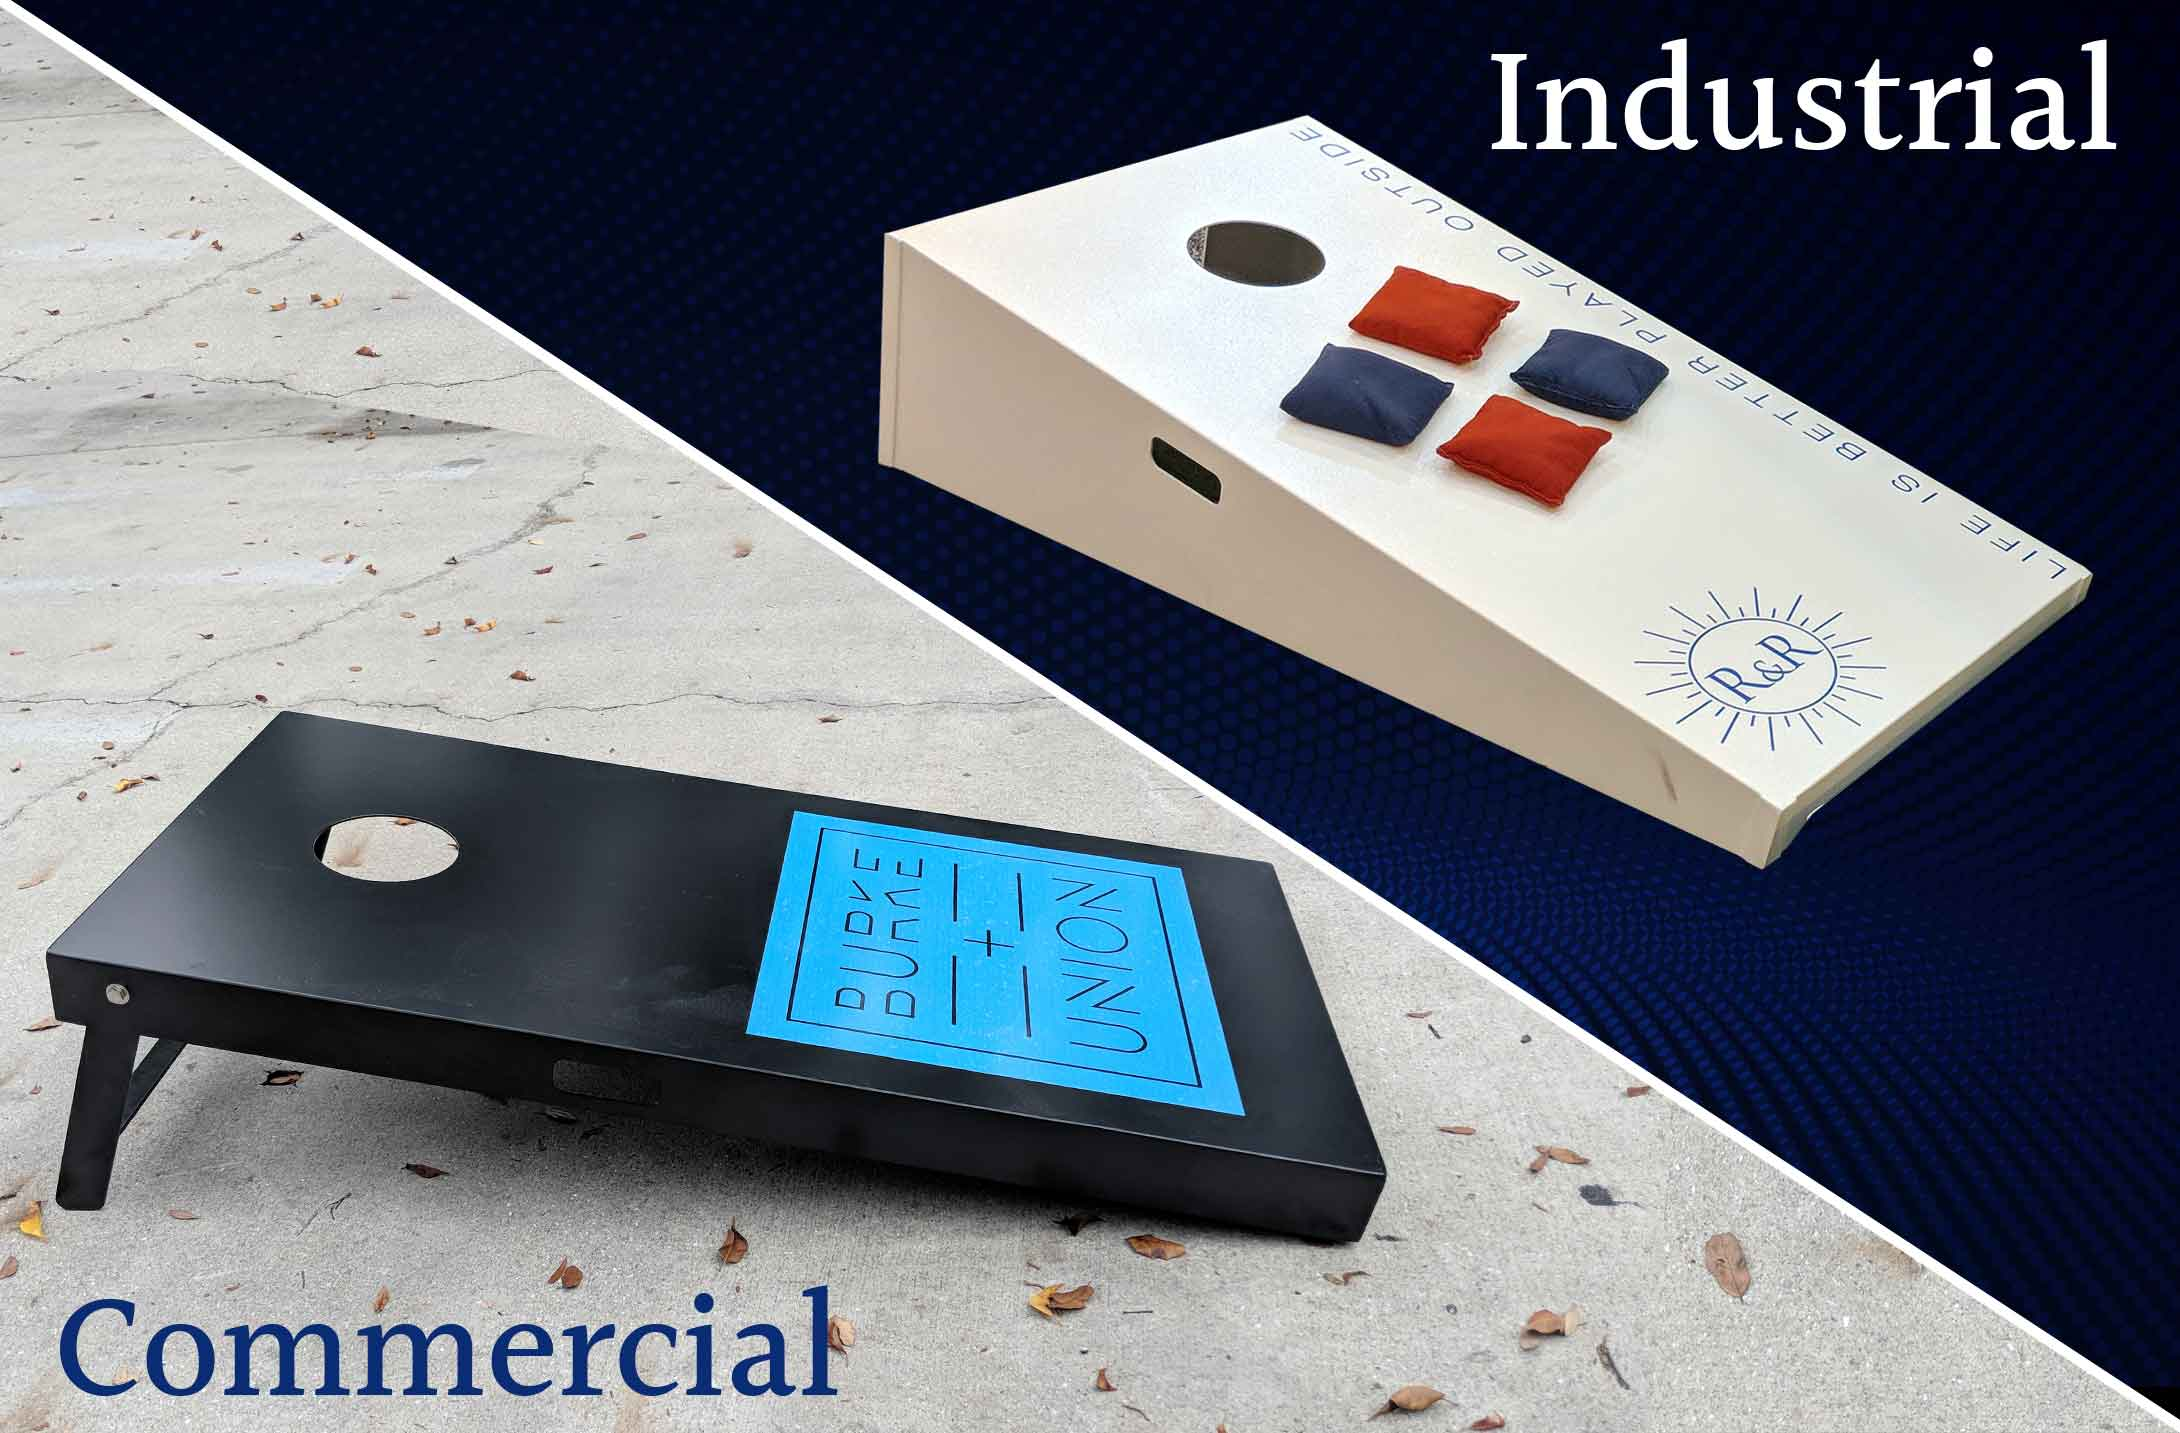 Industrial and Commercial Corn Hole Sets   R&R Outdoors